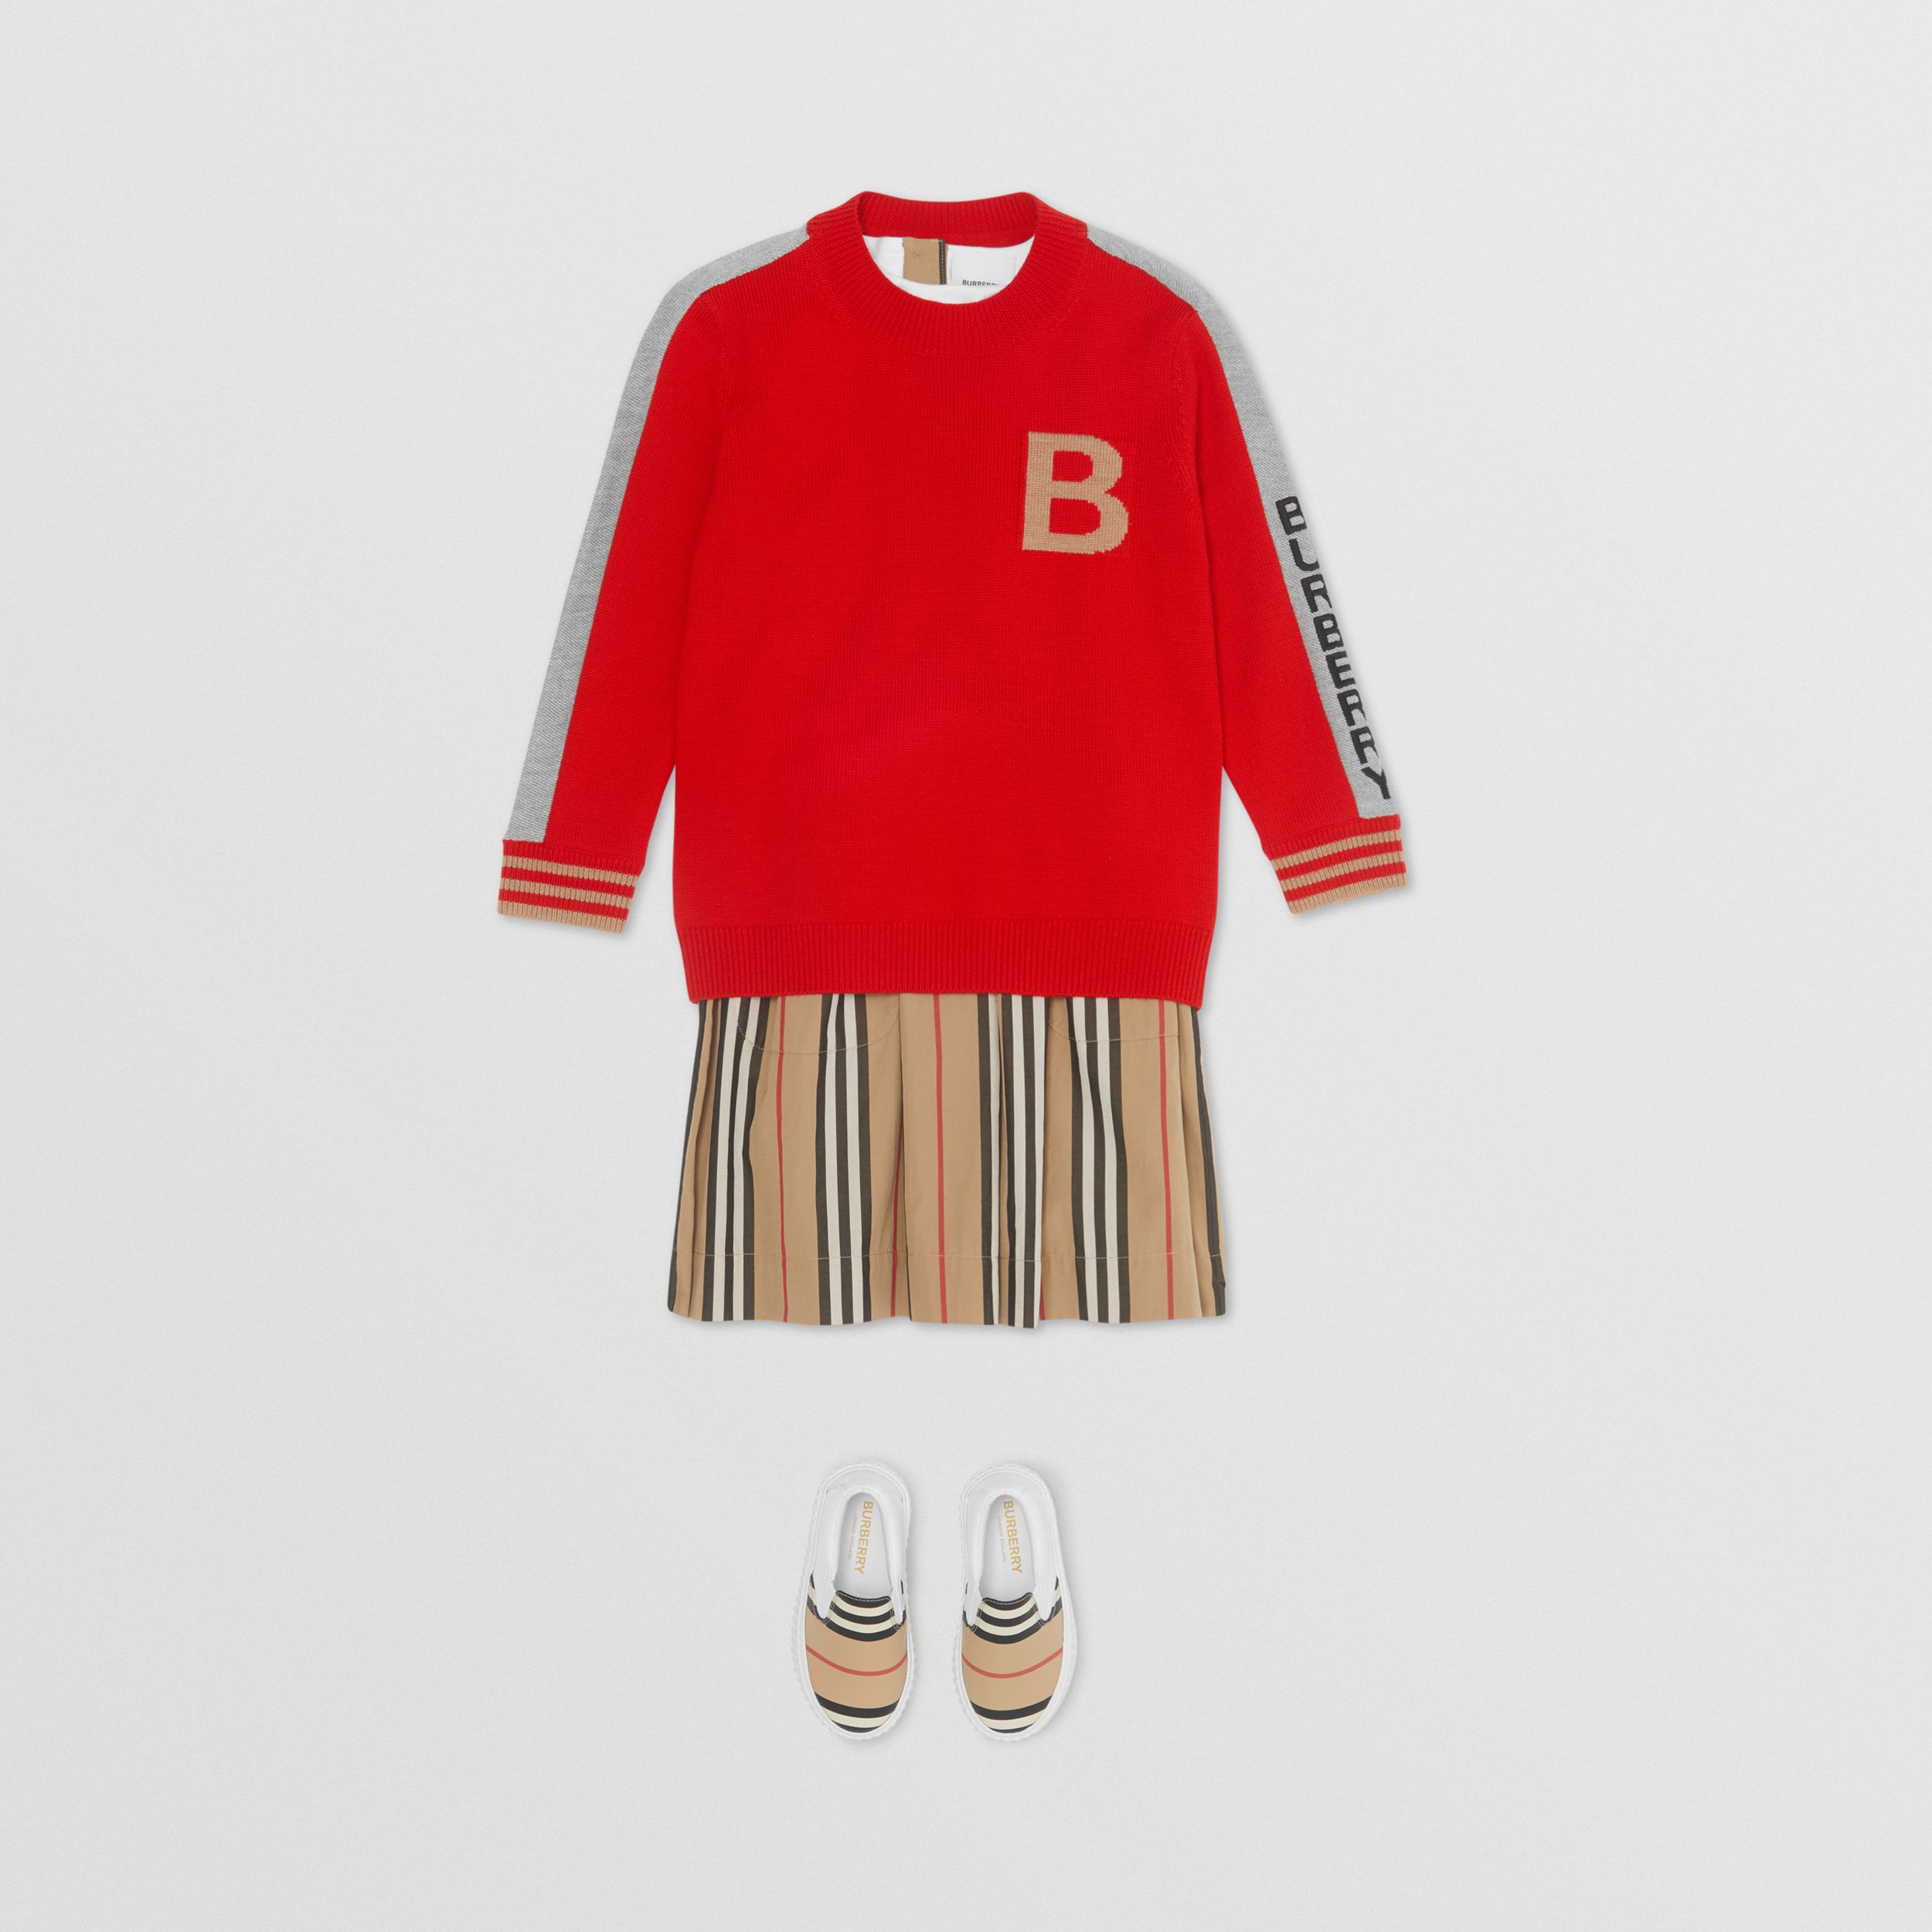 B Motif Merino Wool Jacquard Sweater in Bright Red | Burberry - 3